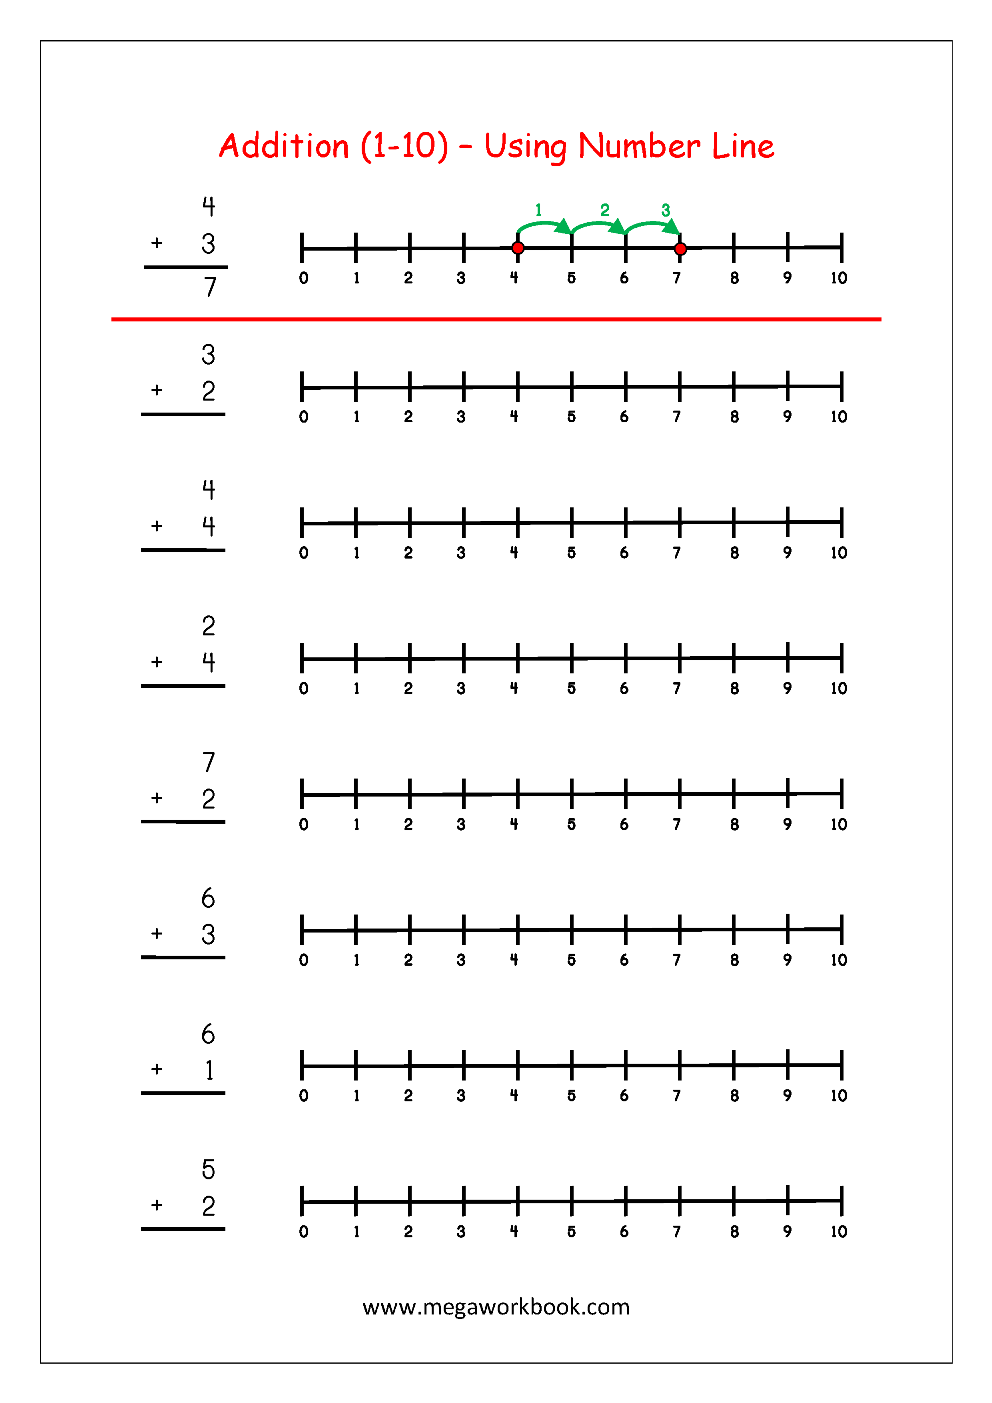 math worksheet : free math worksheets  number addition  megaworkbook : Number Line Addition Worksheet